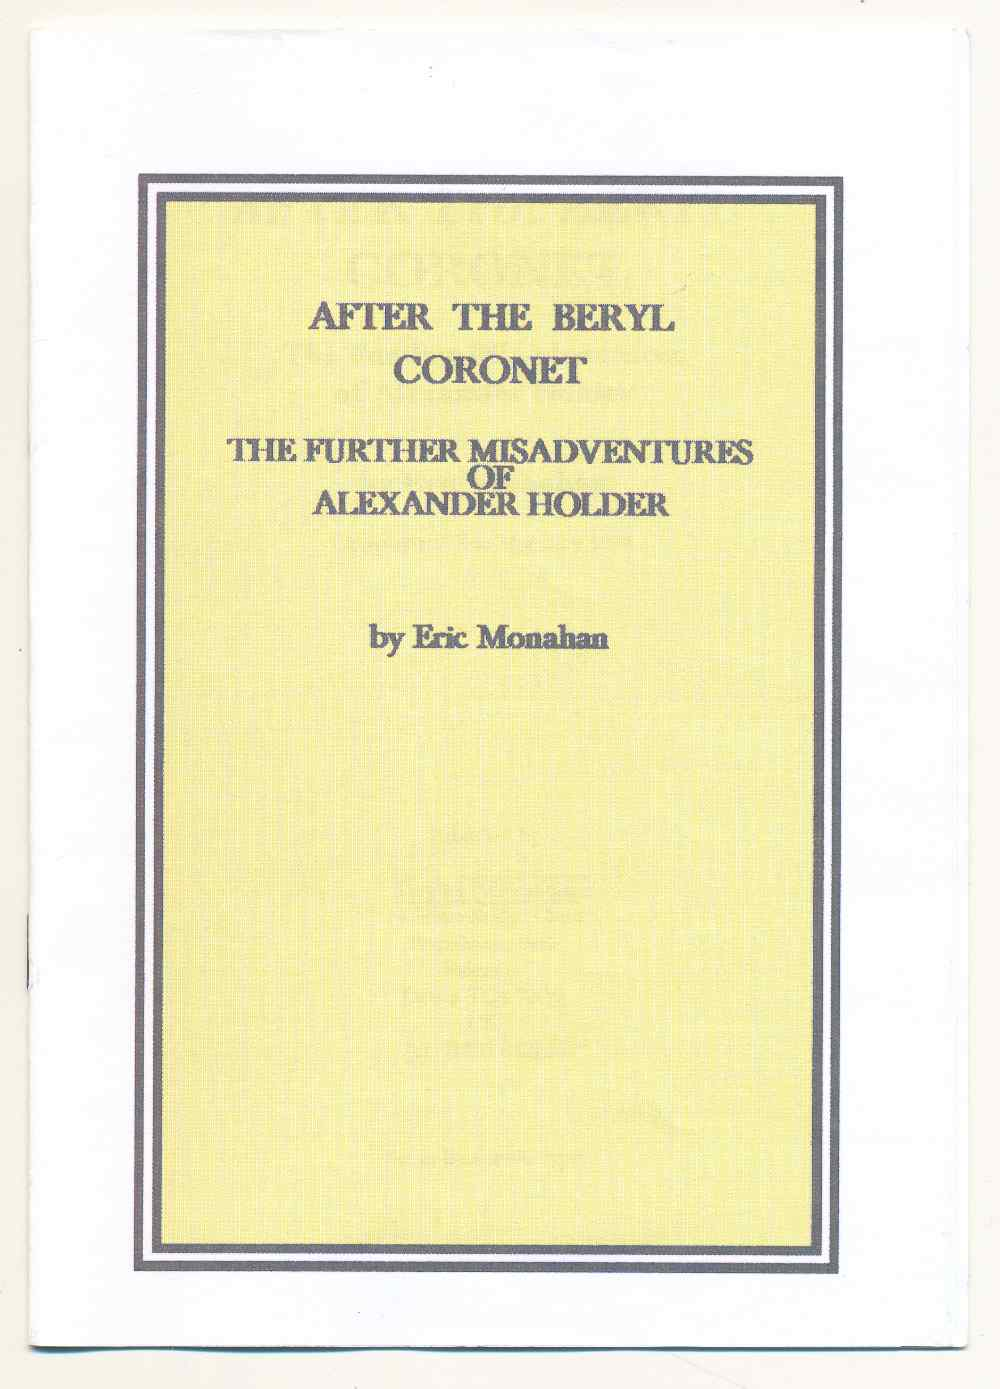 After the beryl coronet : the further misadventures of Alexander Holder